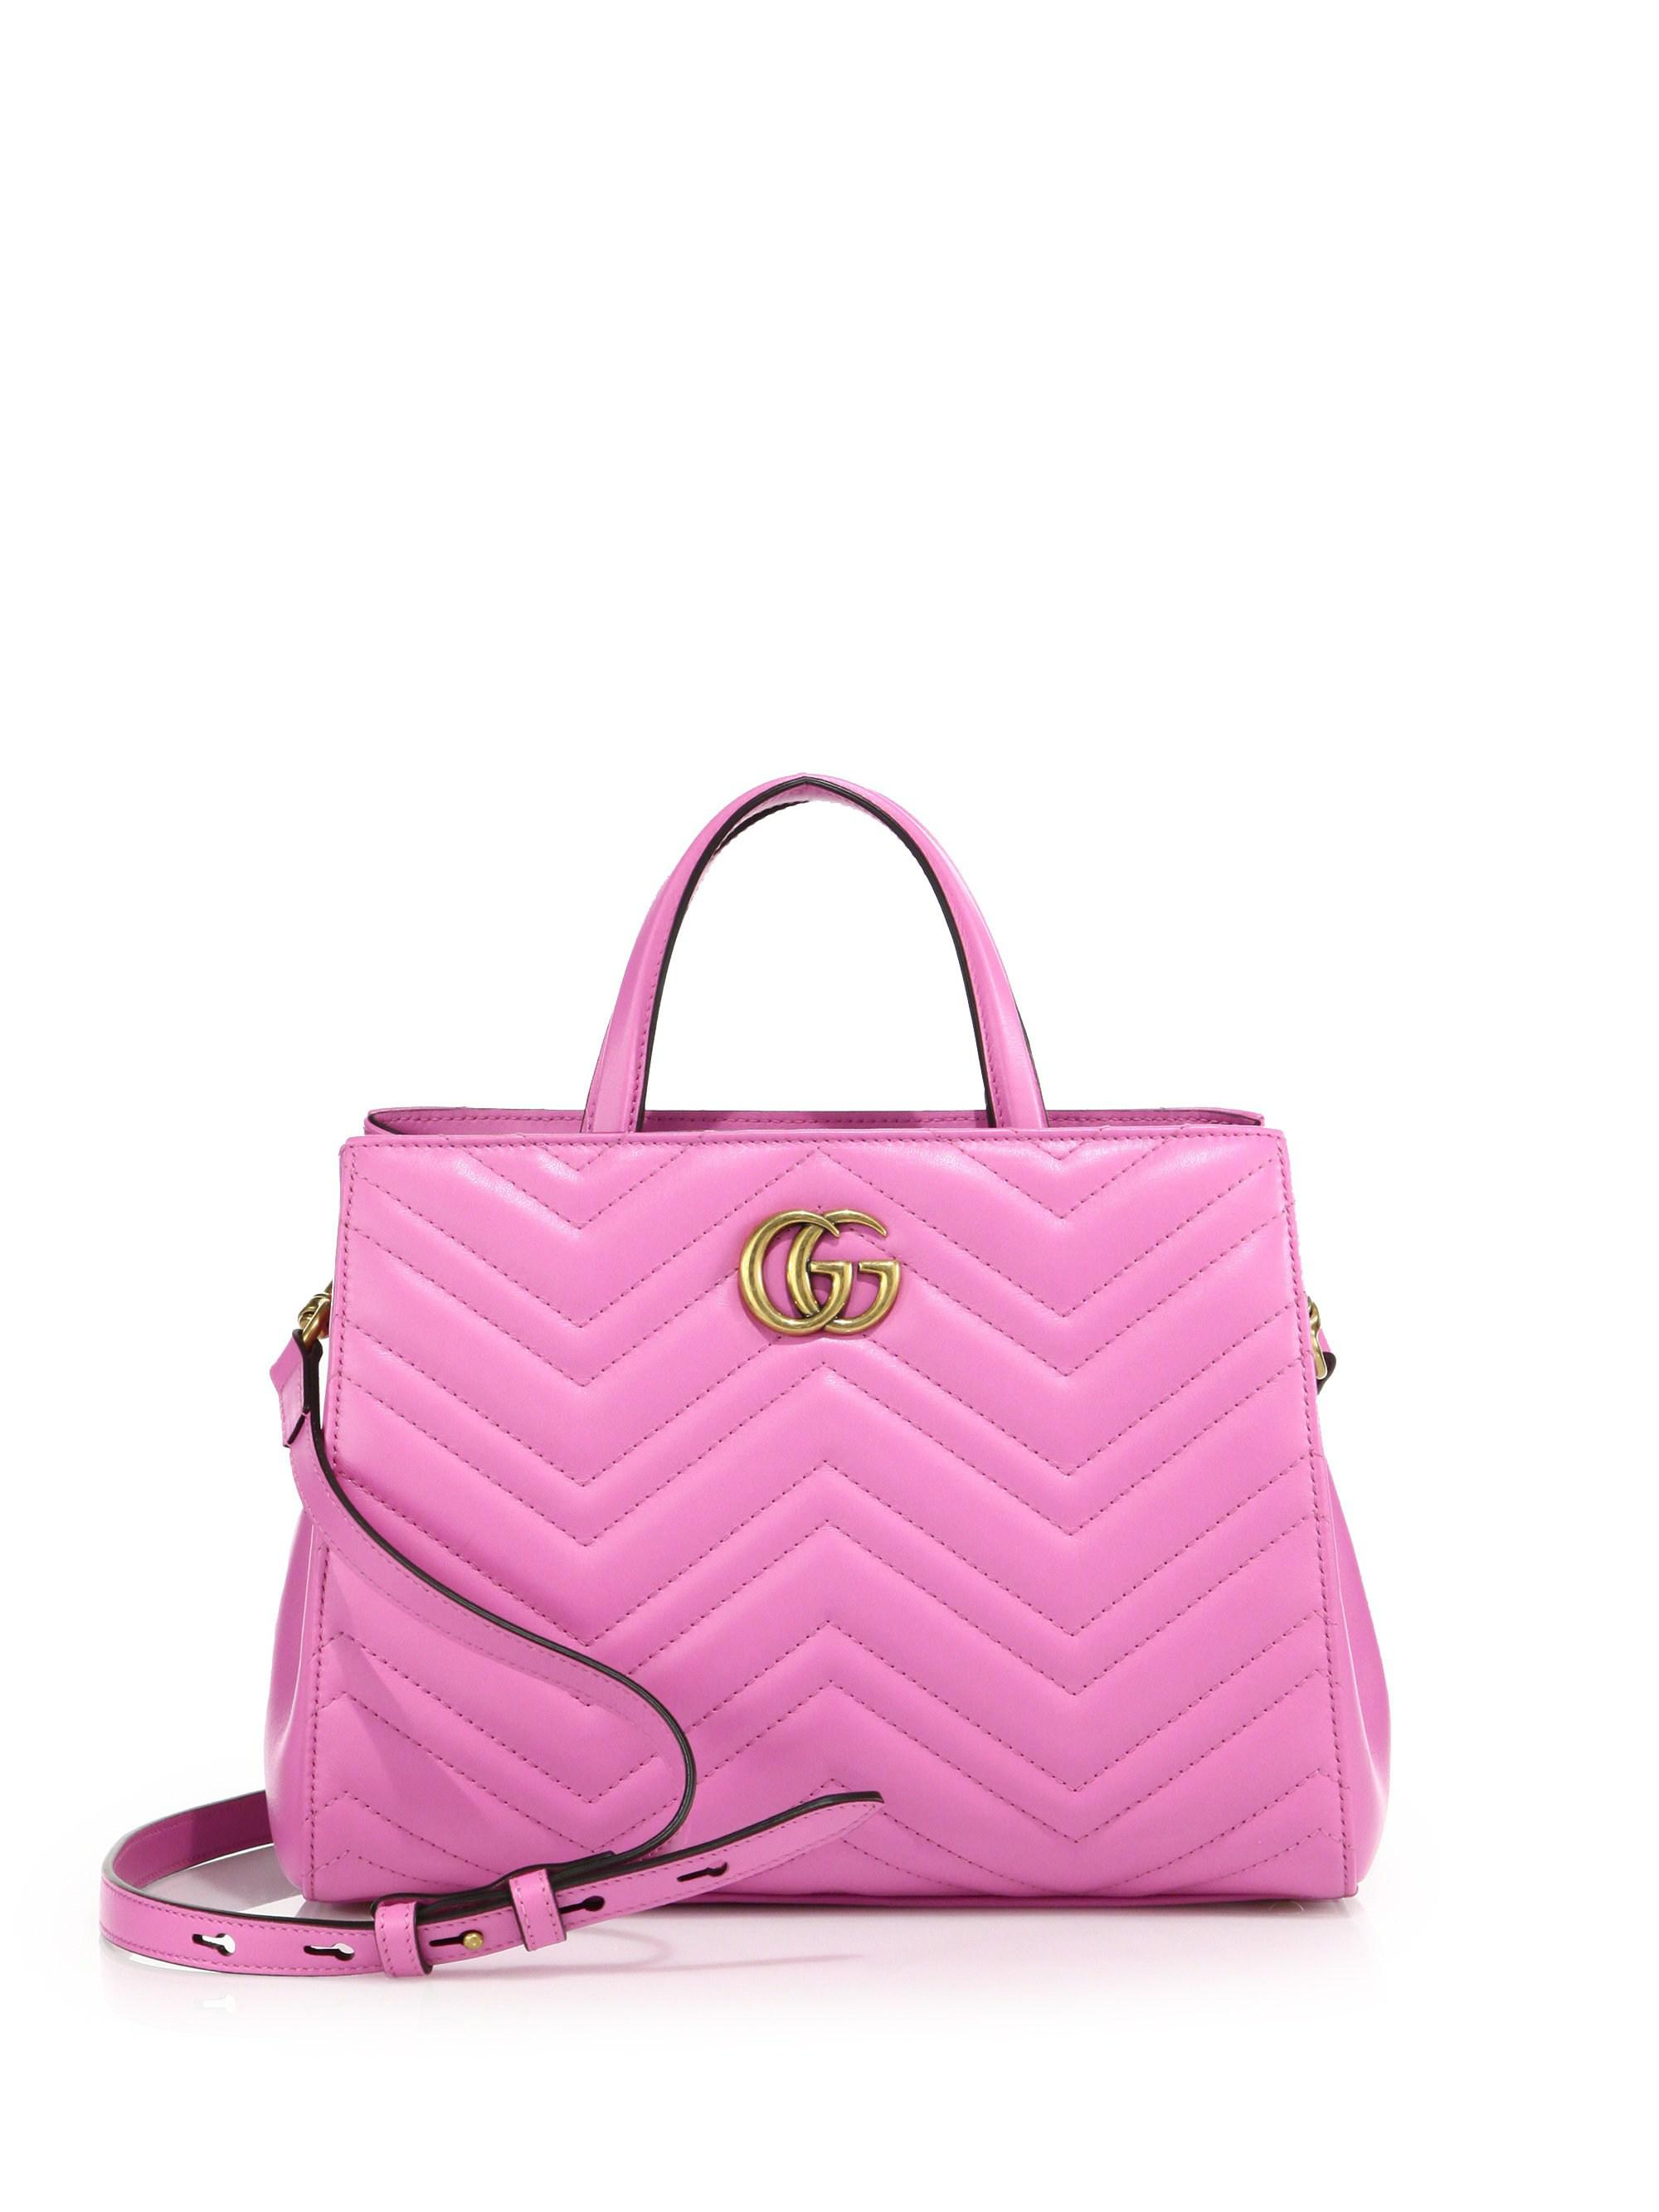 e4b327aaa6cb Lyst - Gucci GG Marmont Matelasse Leather Top-Handle Tote in Pink